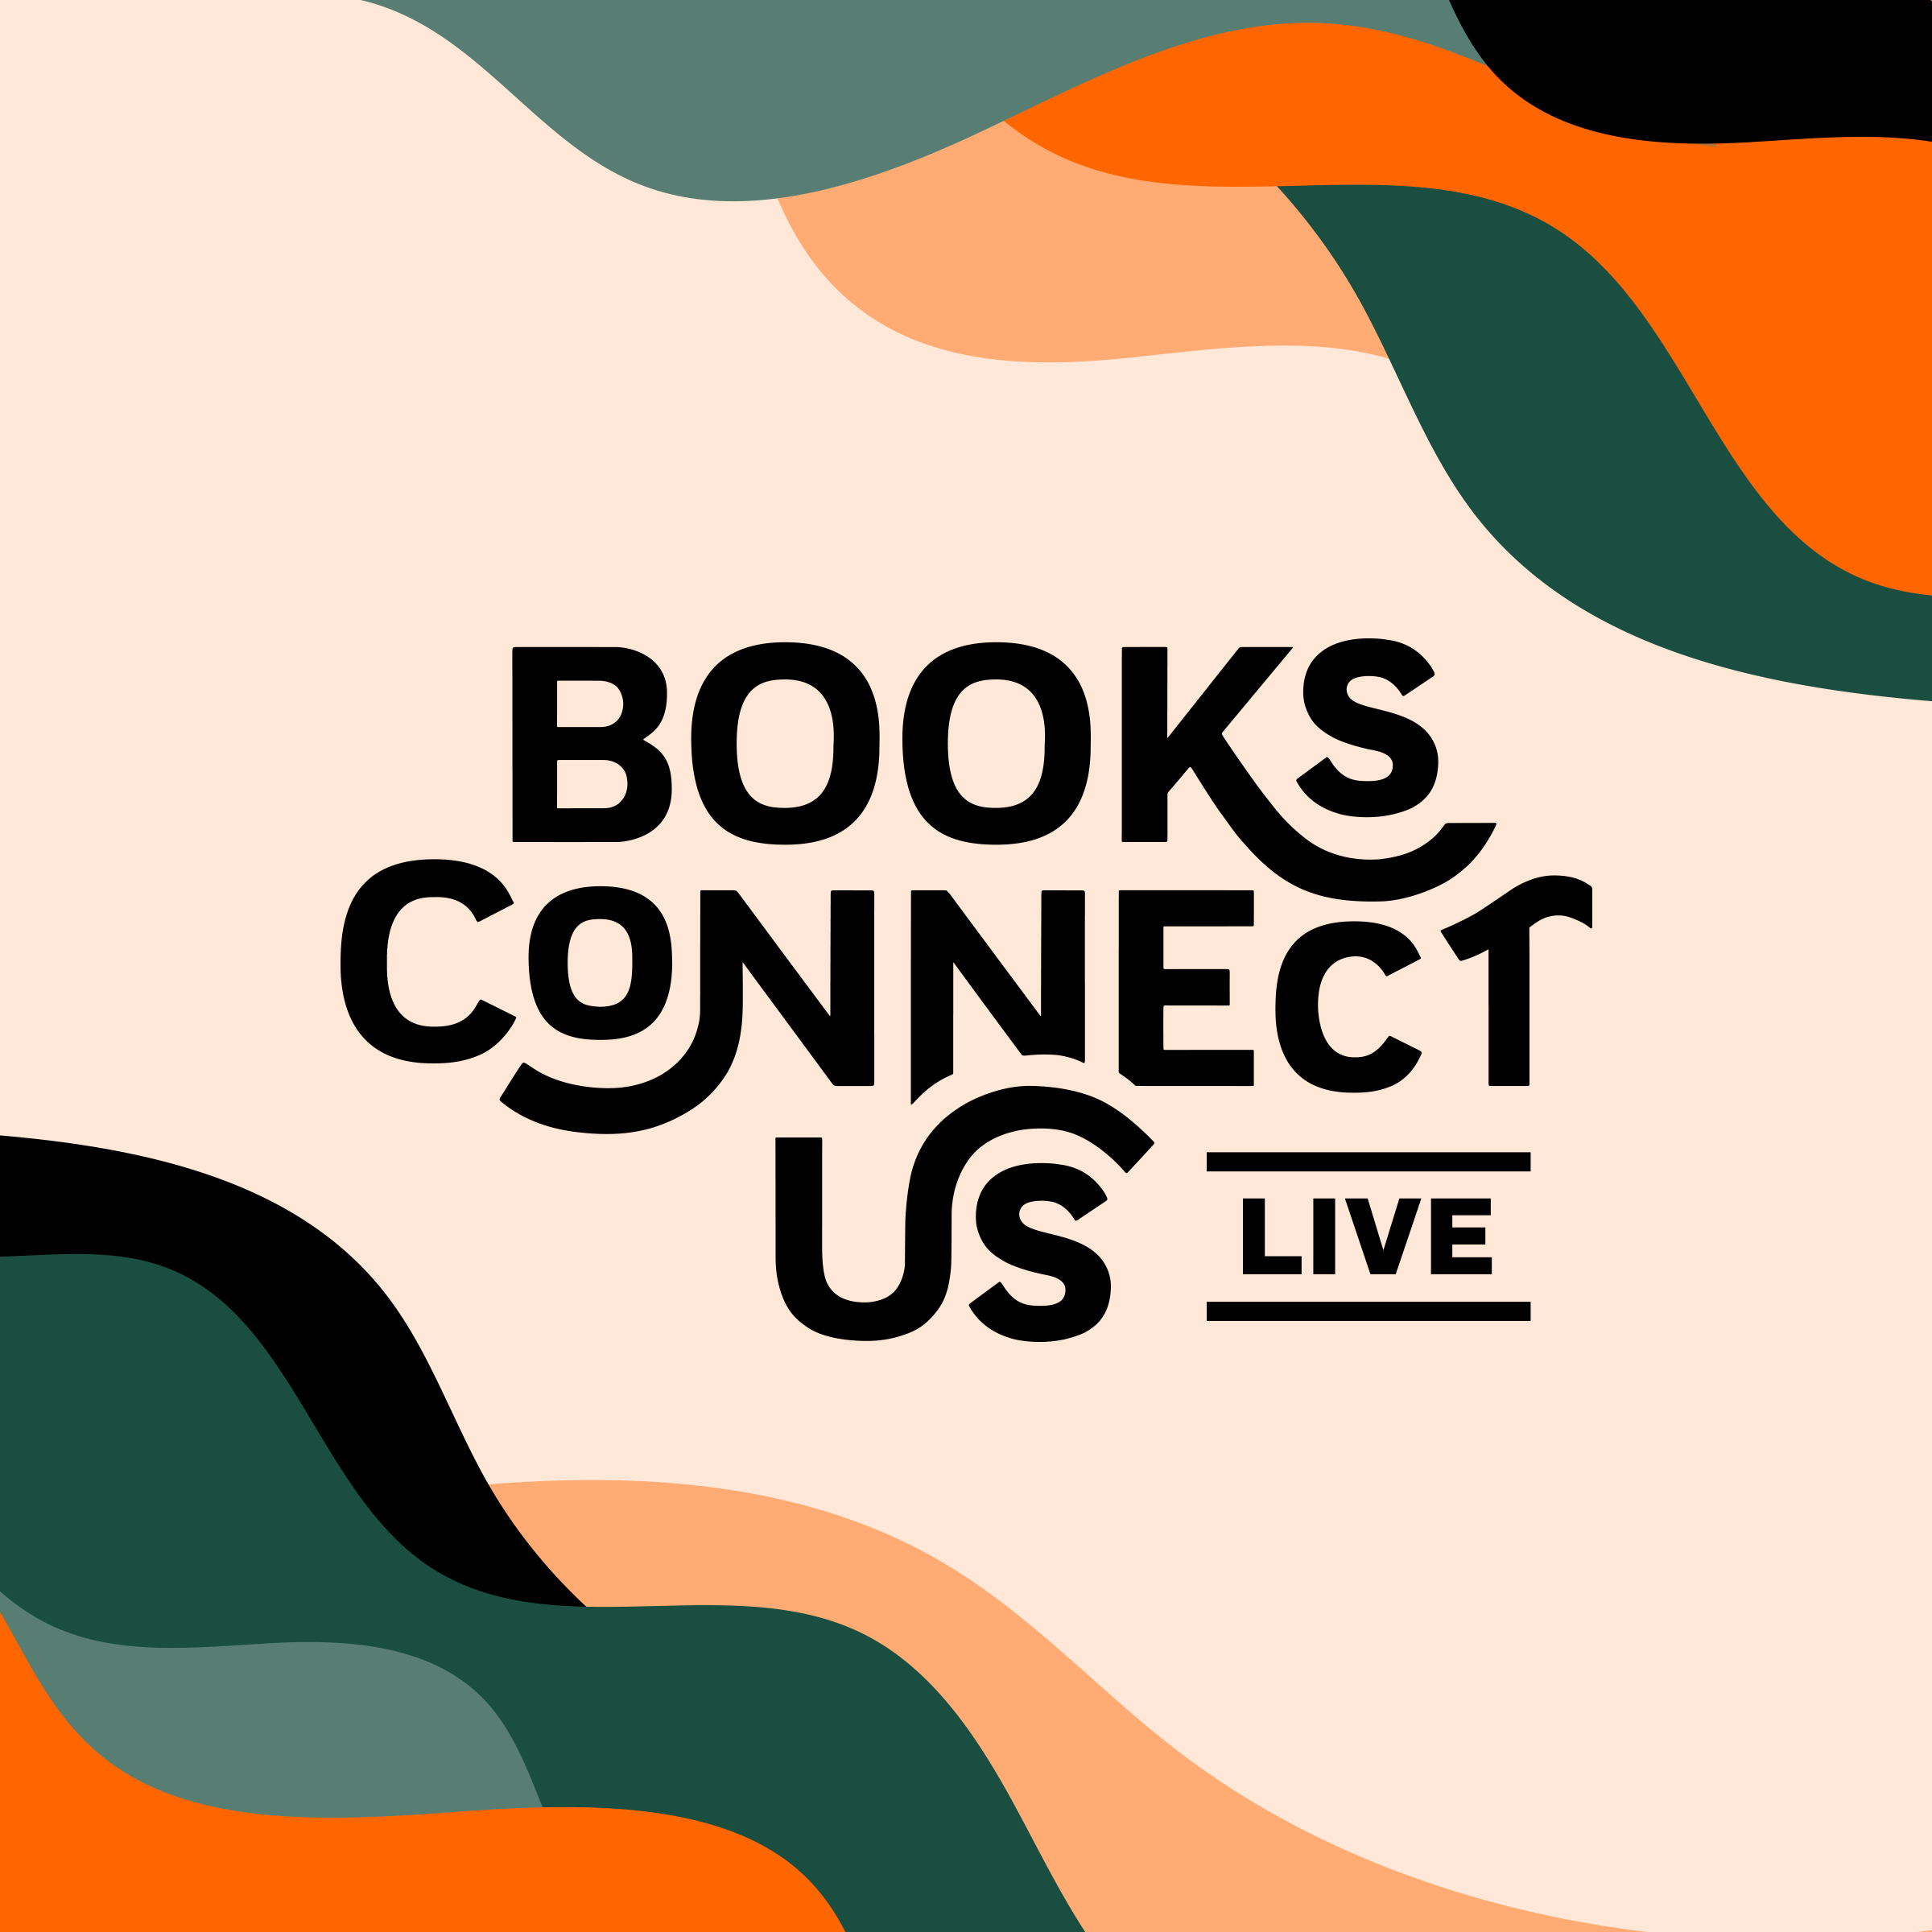 Books Connect Us Live 5/4-5/17